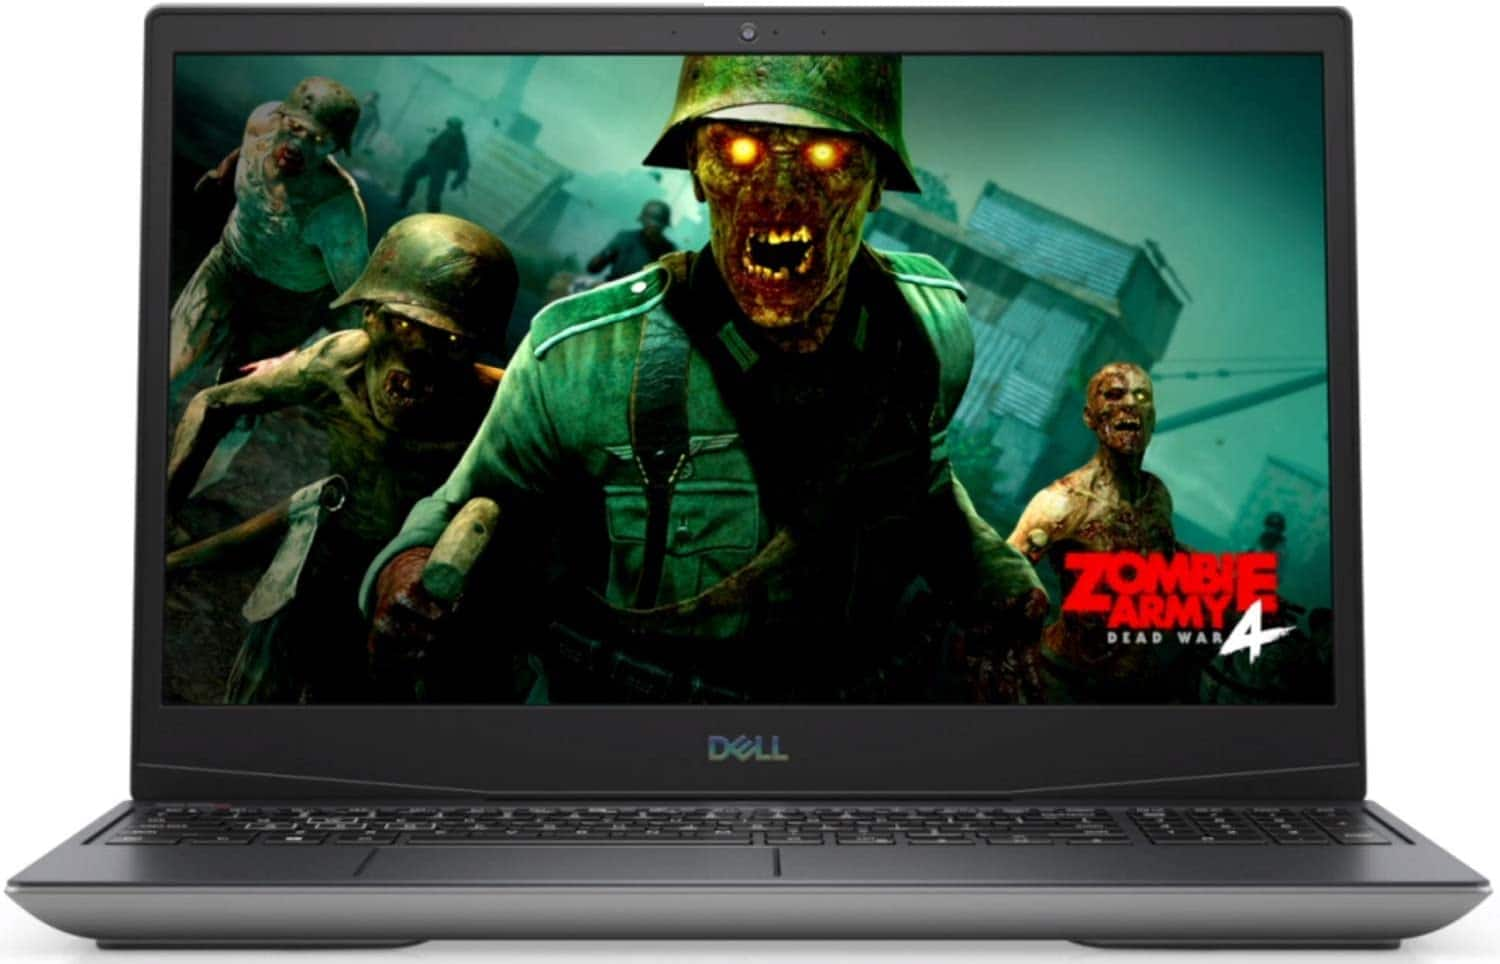 Dell G5 15 SE Laptop: Ryzen 5 4600H, 15.6 1080p 144Hz, 16GB DDR4, 256GB SSD, RX 5600M, Win 10 $926.09 AC + Free Shipping @ Dell